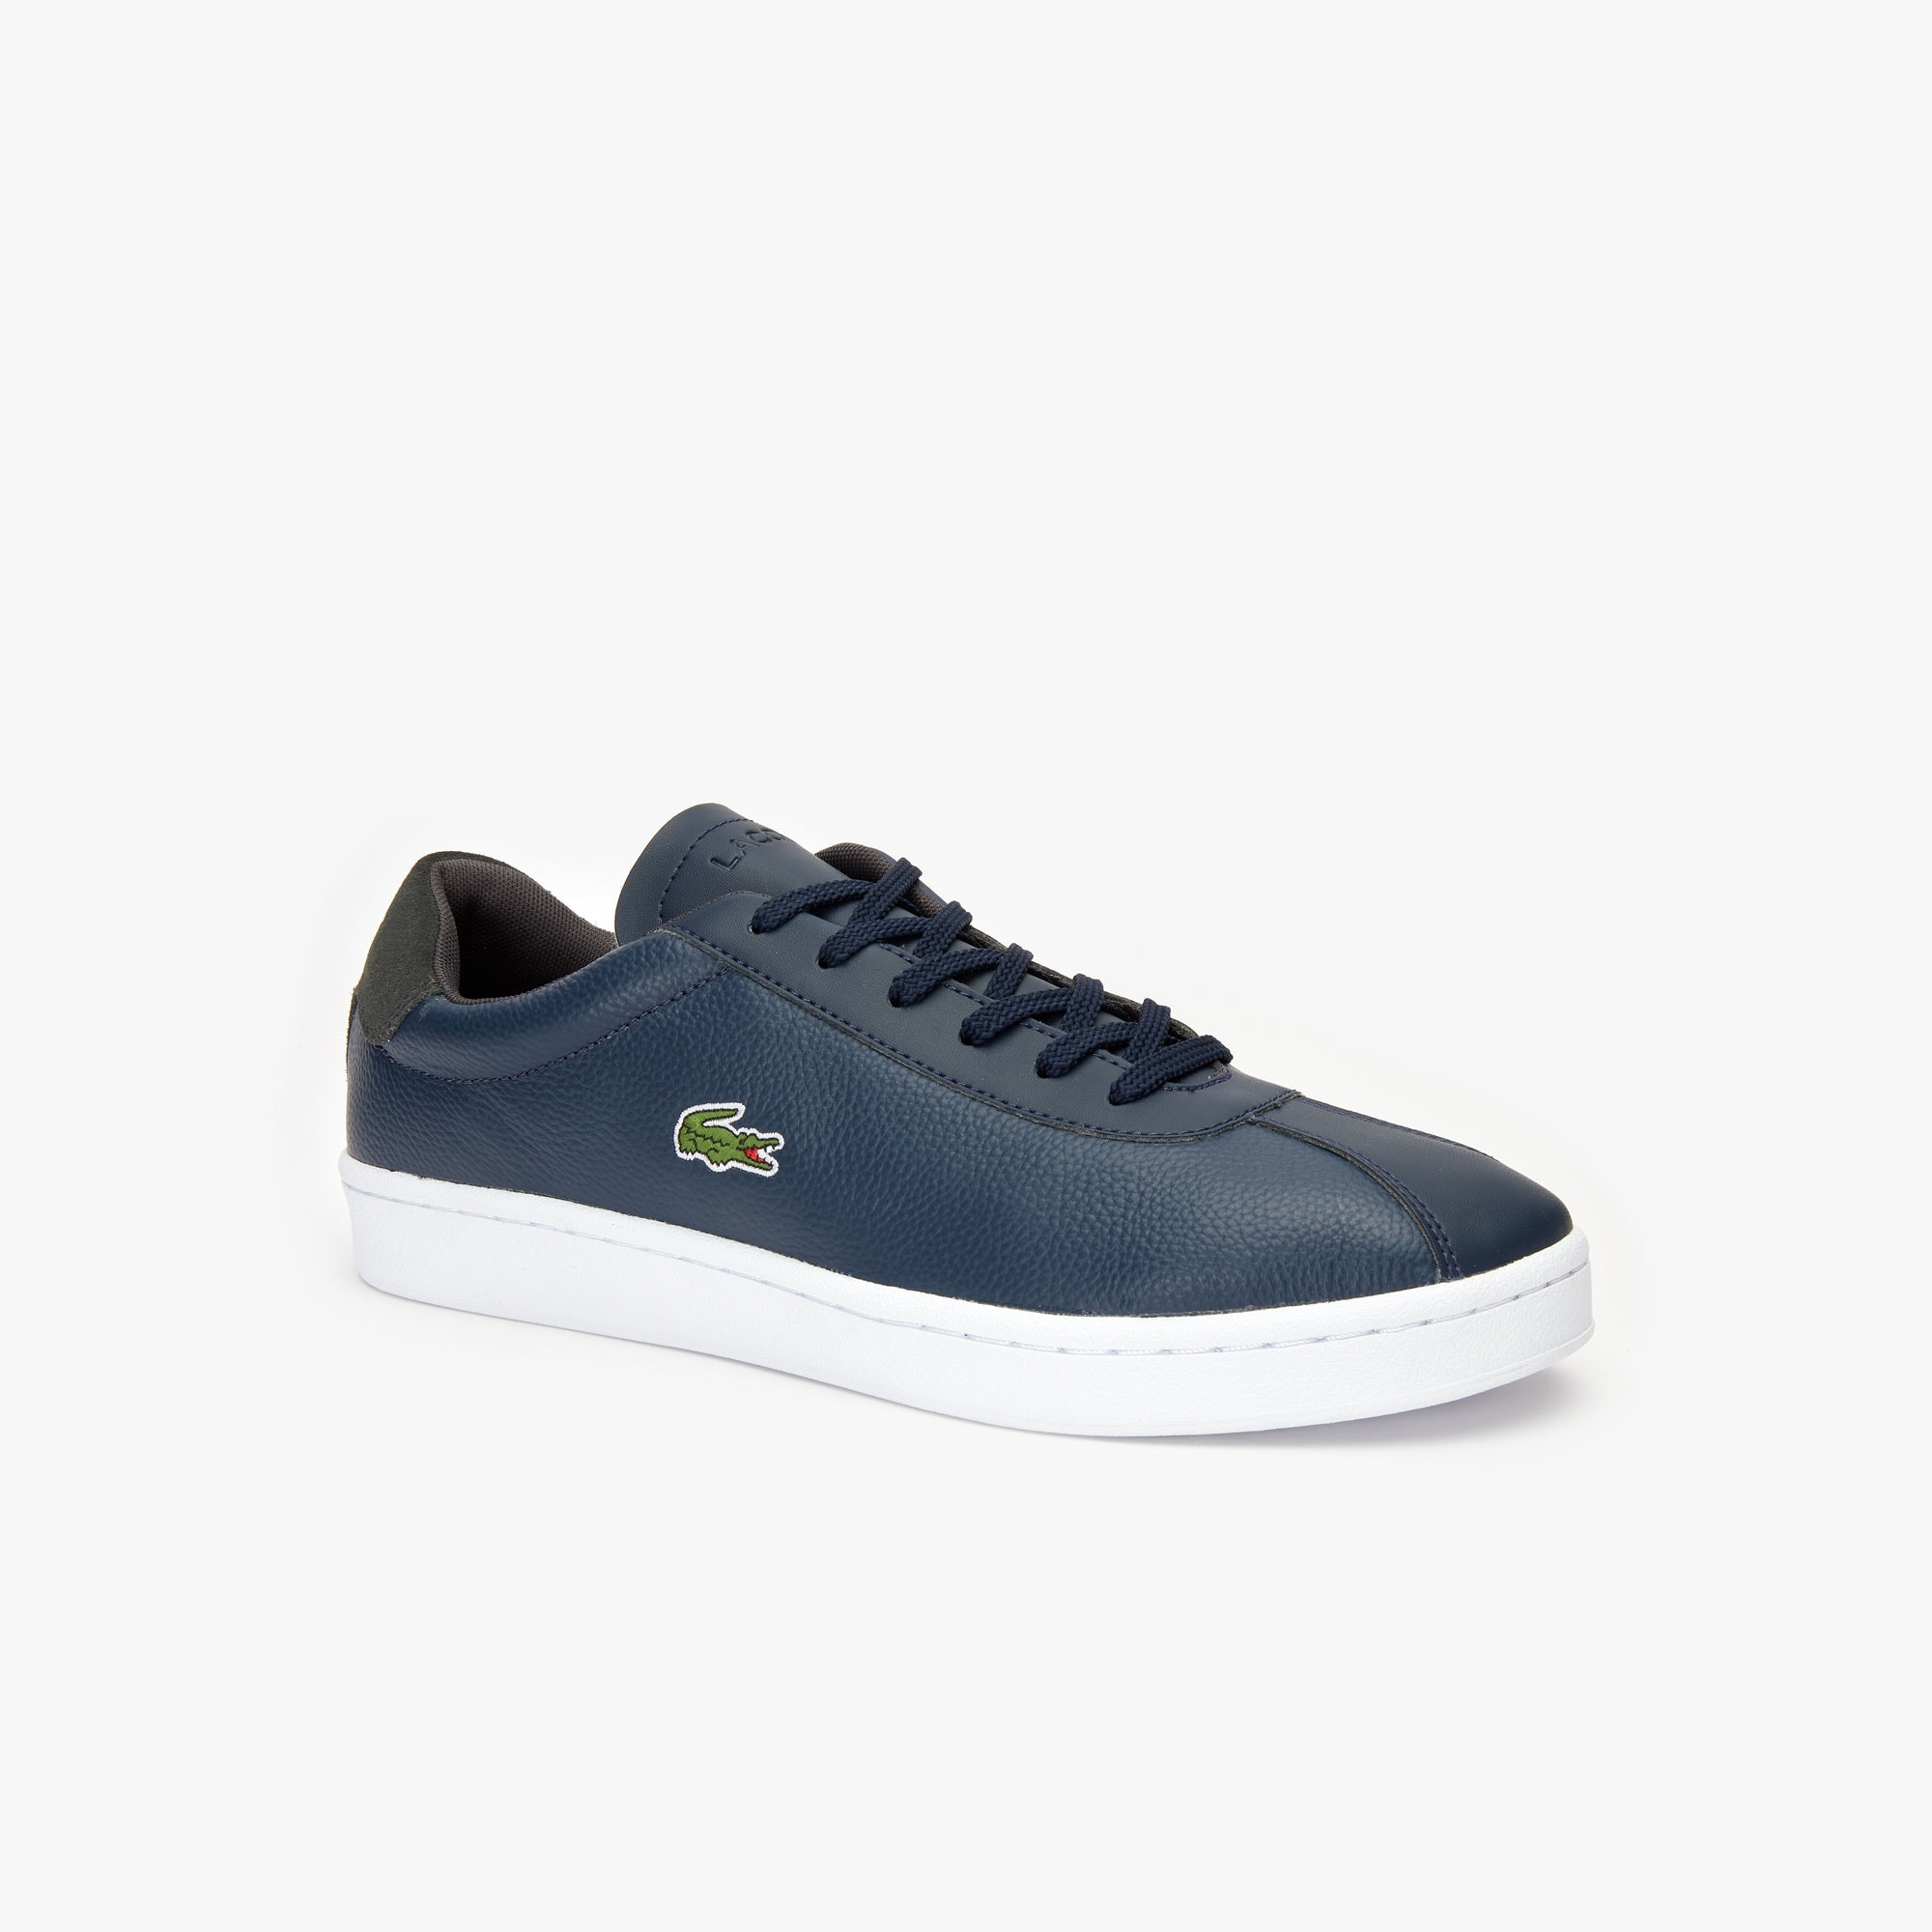 Lacoste Sneakers Men's Masters Leather-Paneled Sneakers